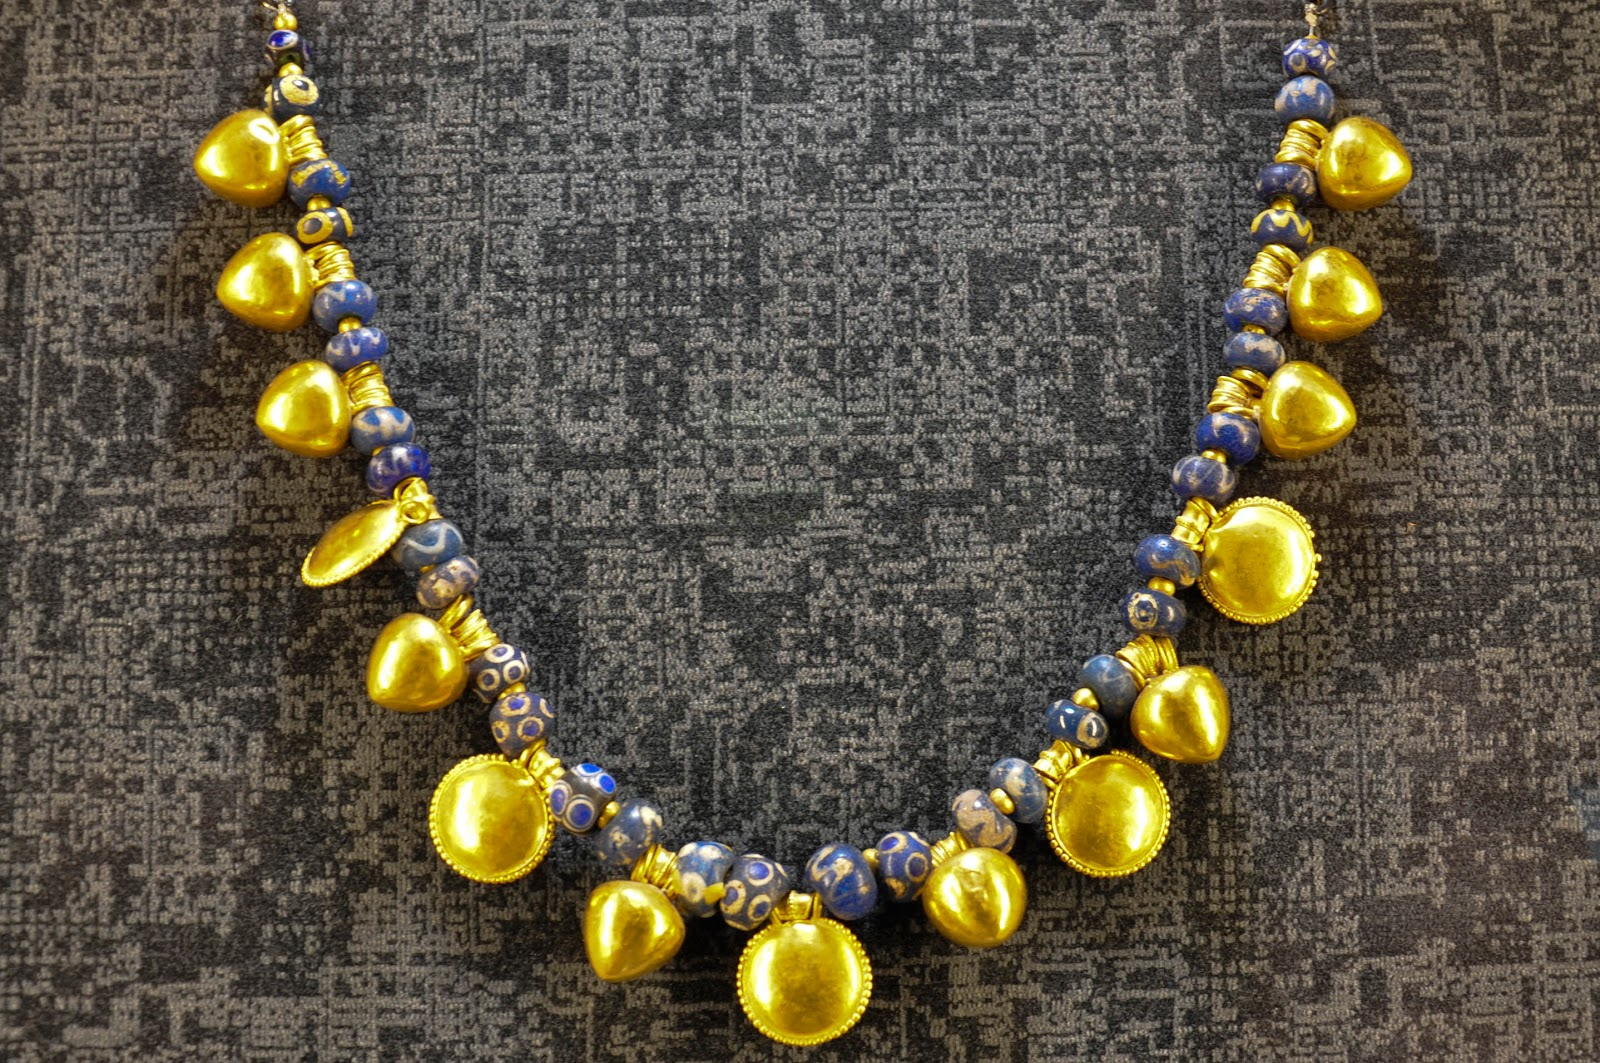 A yellow gold and vitreous paste Etruscan necklace from the 4th century BC in the Museum of the Jewellery in Vicenza